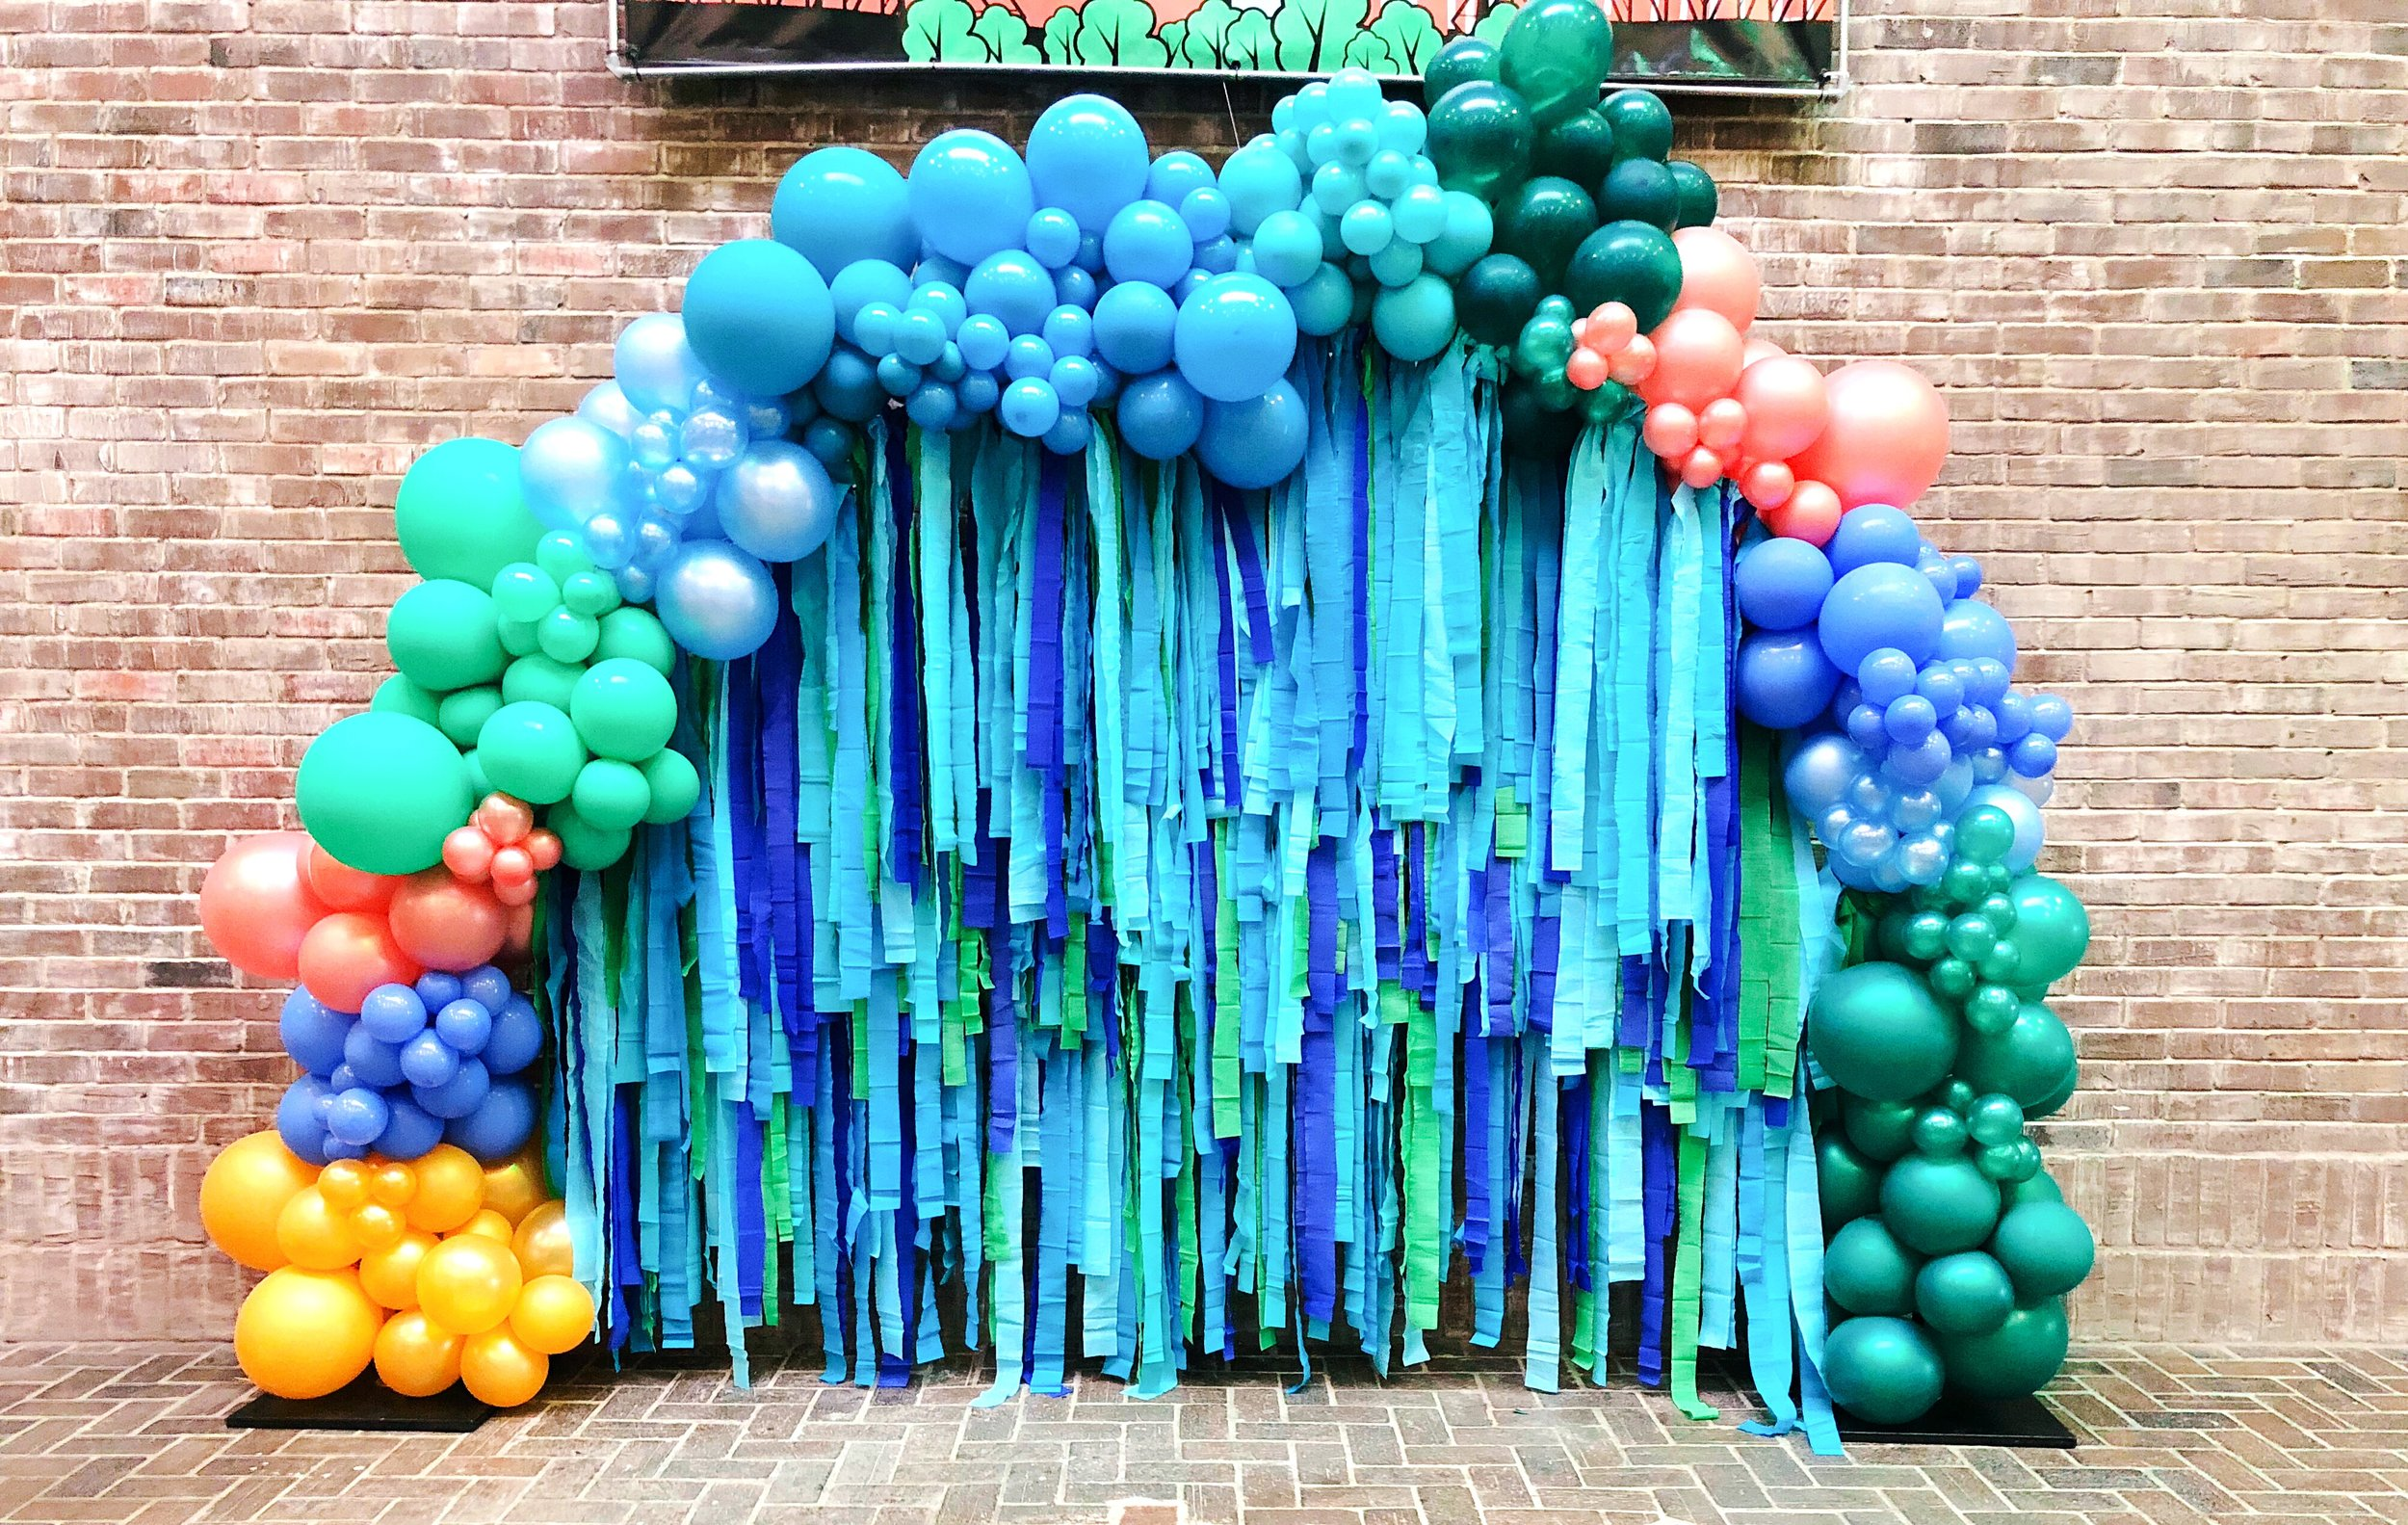 vroom_vroom_balloon_tassel_backdrop_freestanding_vroom_vroom_balloon_organic_balloon_installation.JPG